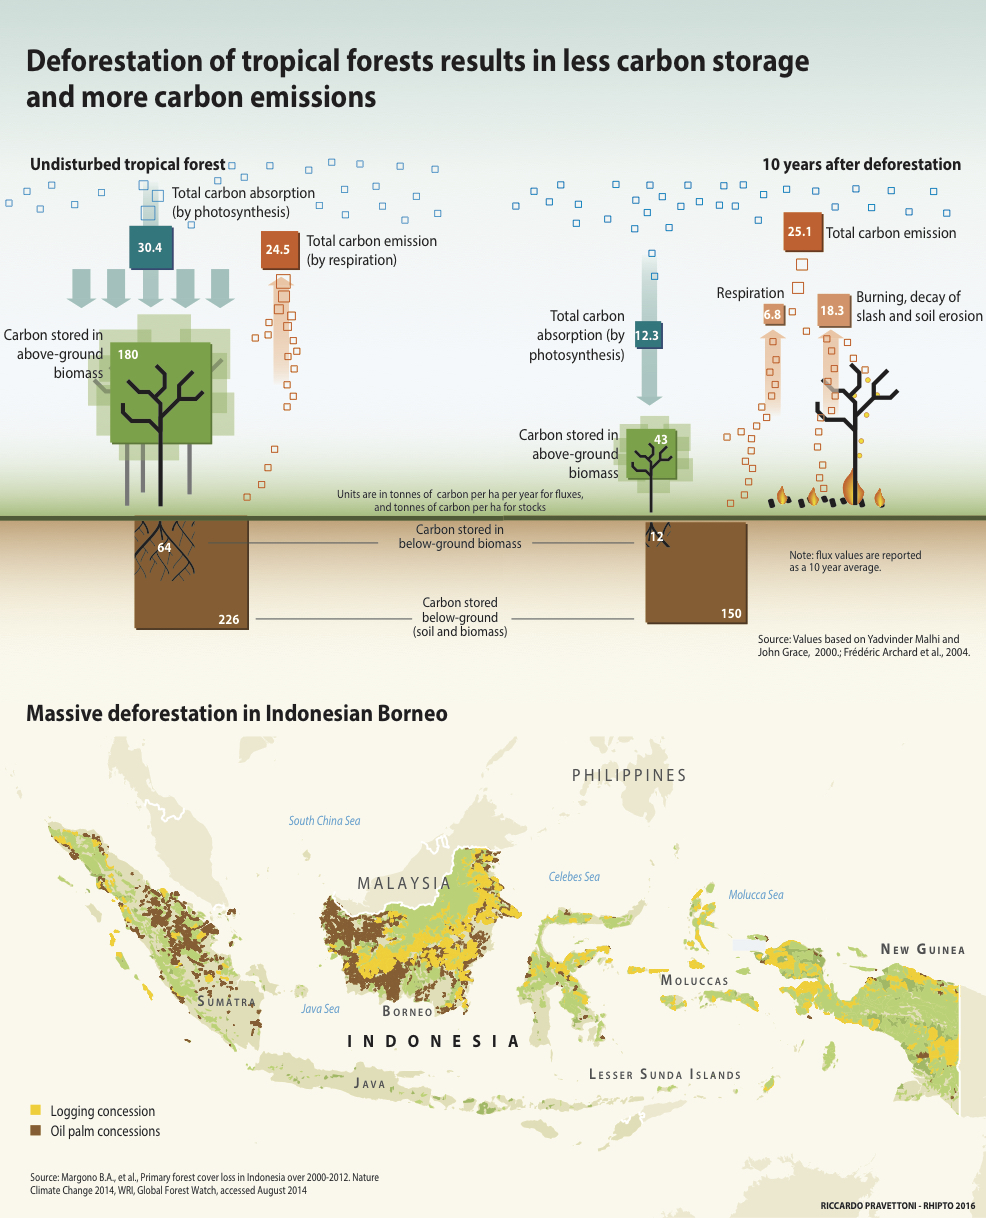 Deforestation and Carbon storage